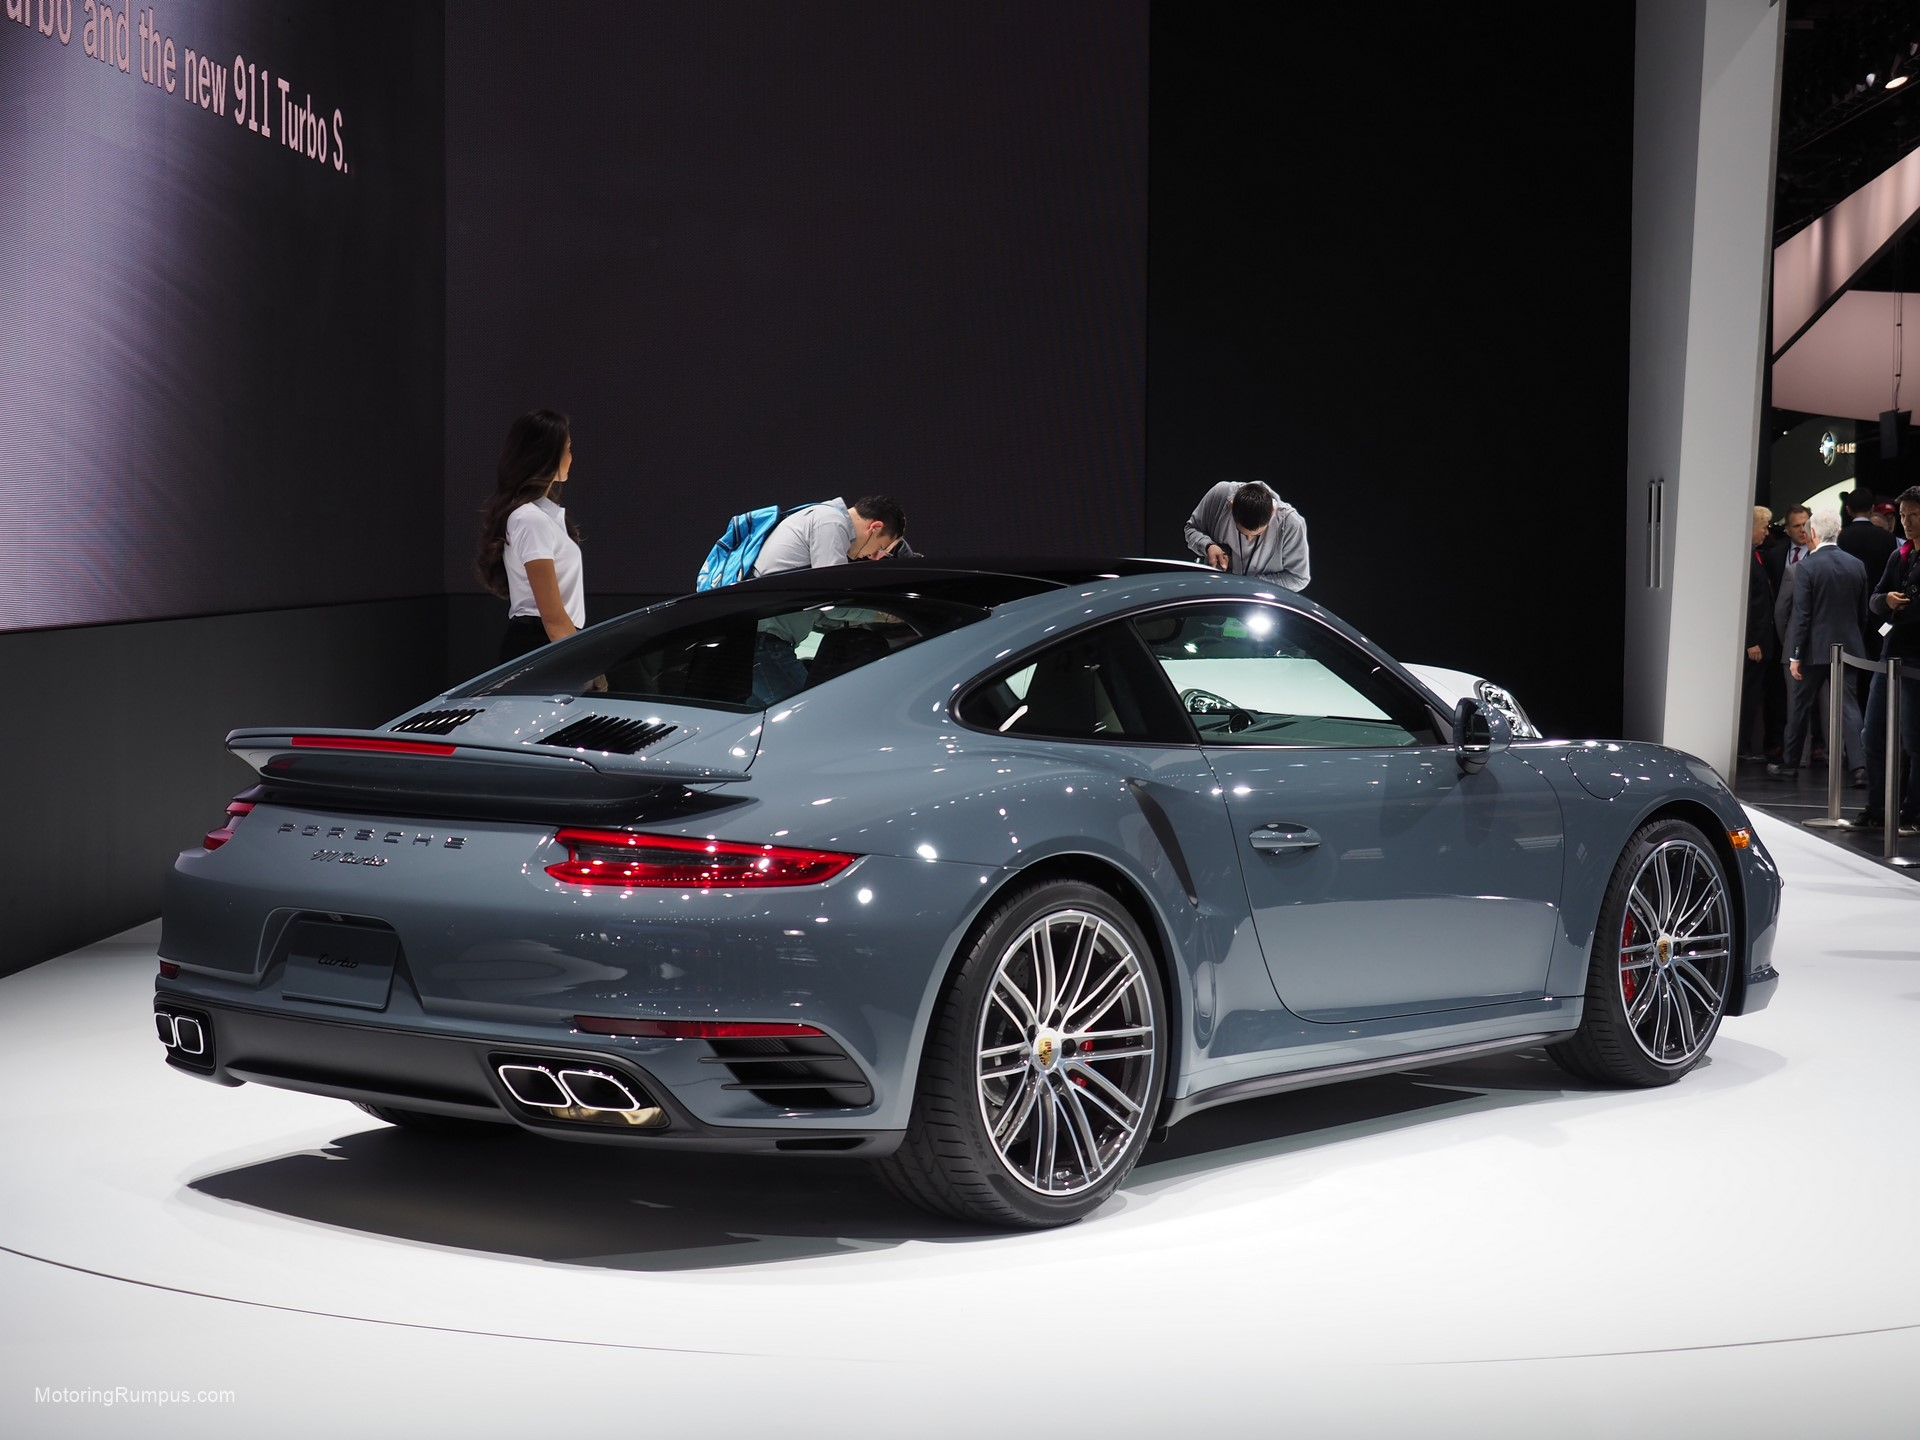 naias 2016 porsche motoring rumpus. Black Bedroom Furniture Sets. Home Design Ideas